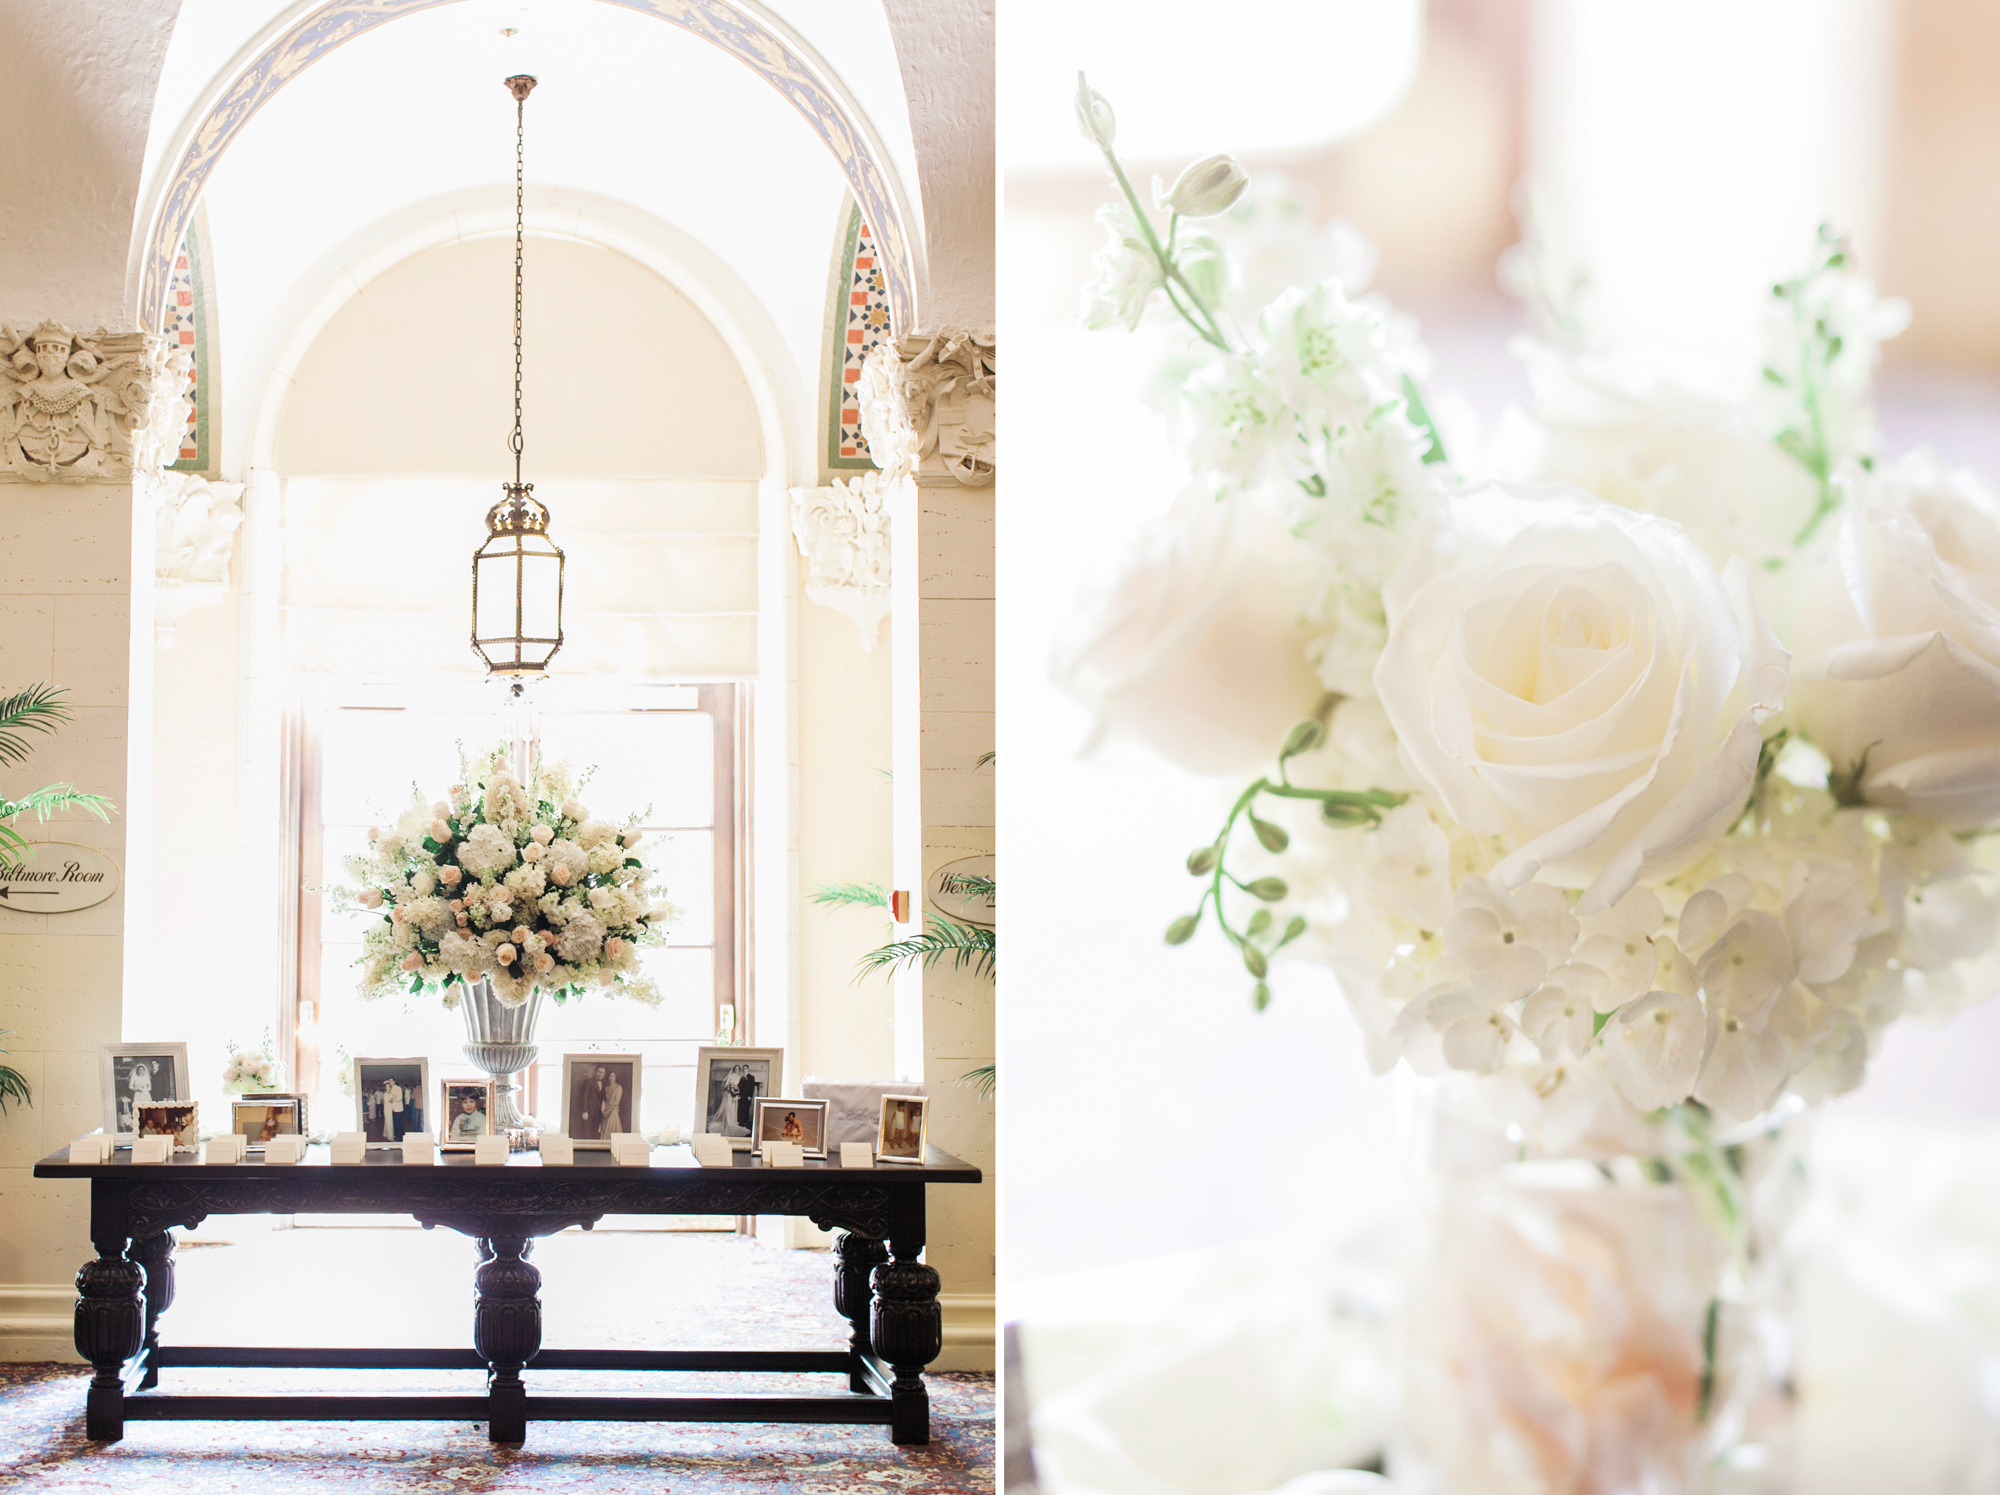 35_Claudine_Dio_Westchester_Country_Club_Wedding_Rye_NY_Tanya_Salazar_Photography.jpg